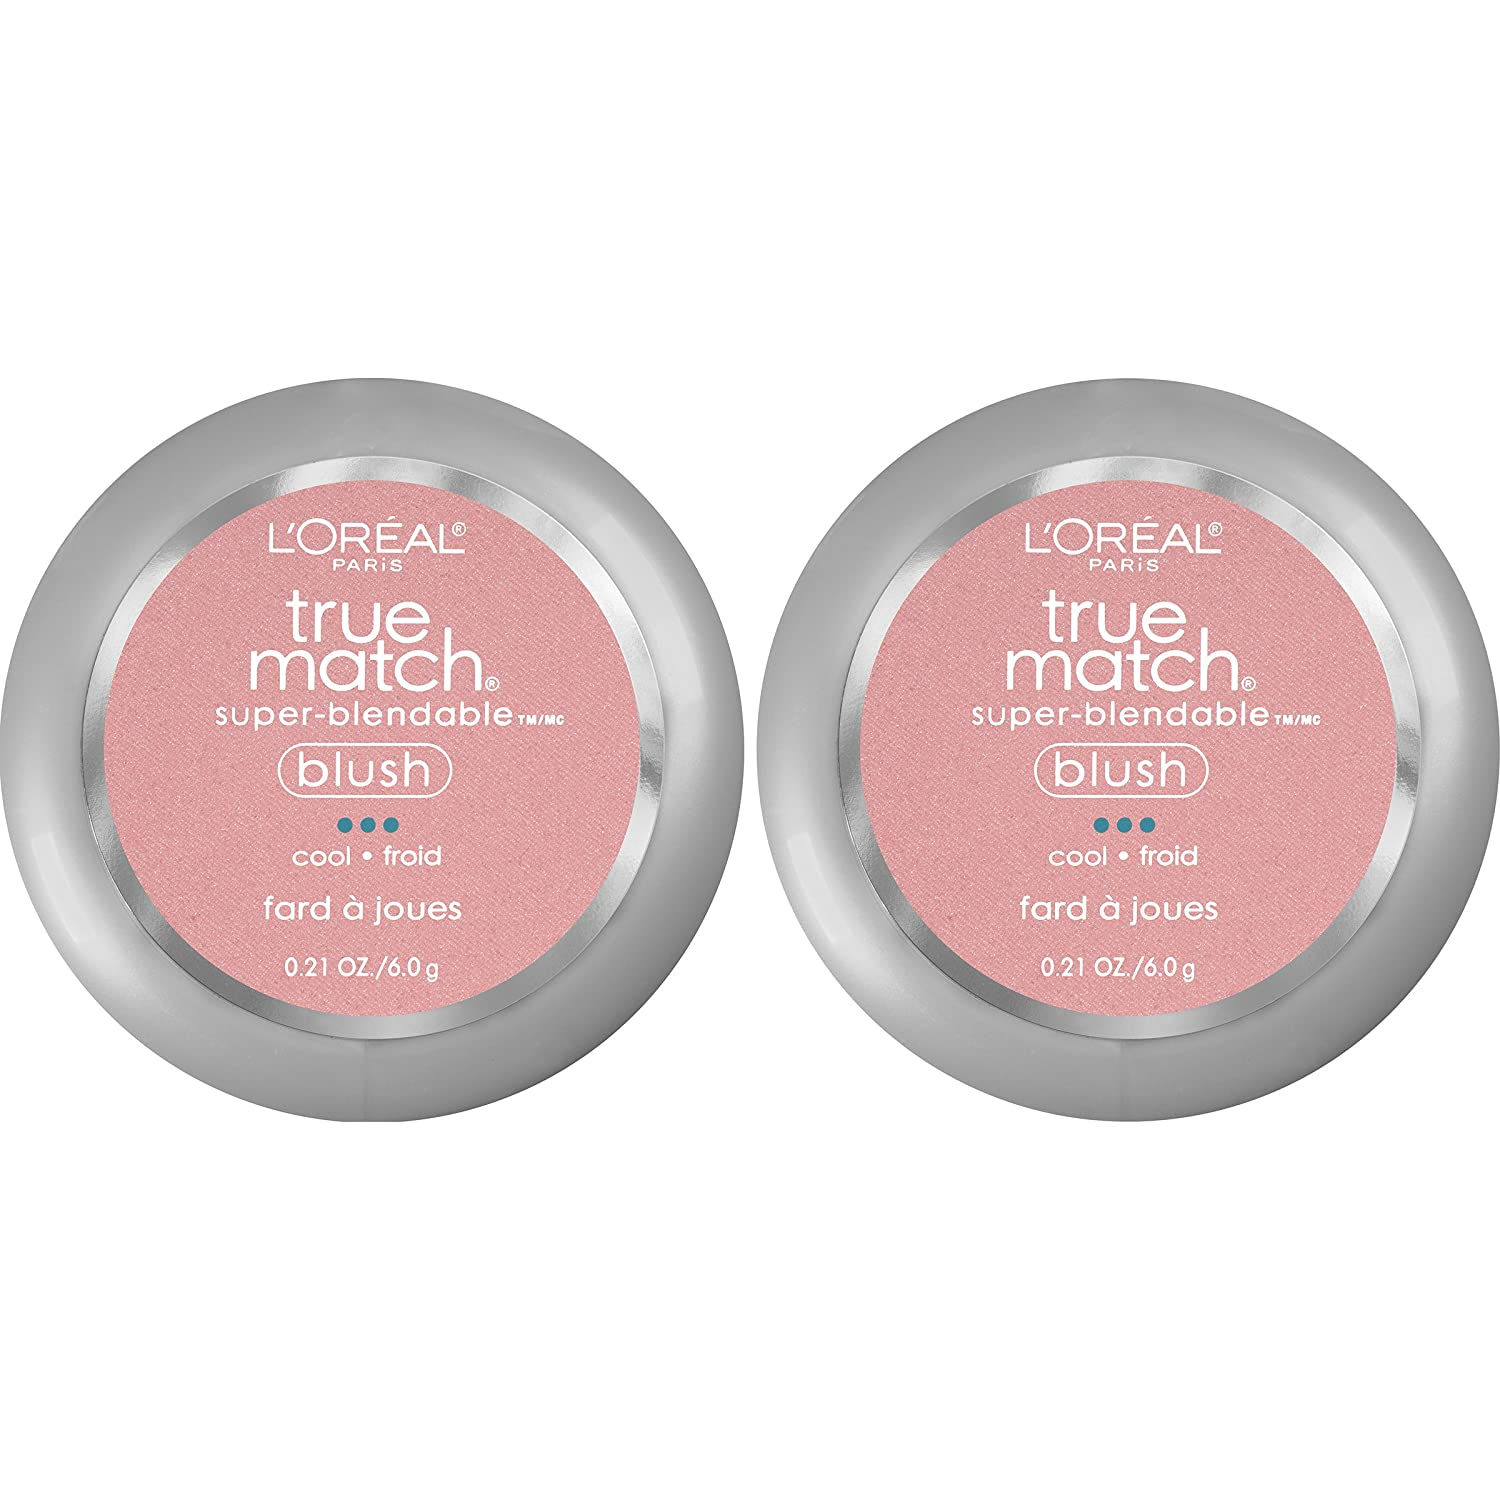 L'Oreal Paris Cosmetics True Match Super-Blendable Blush, Tender Rose, 2 Count